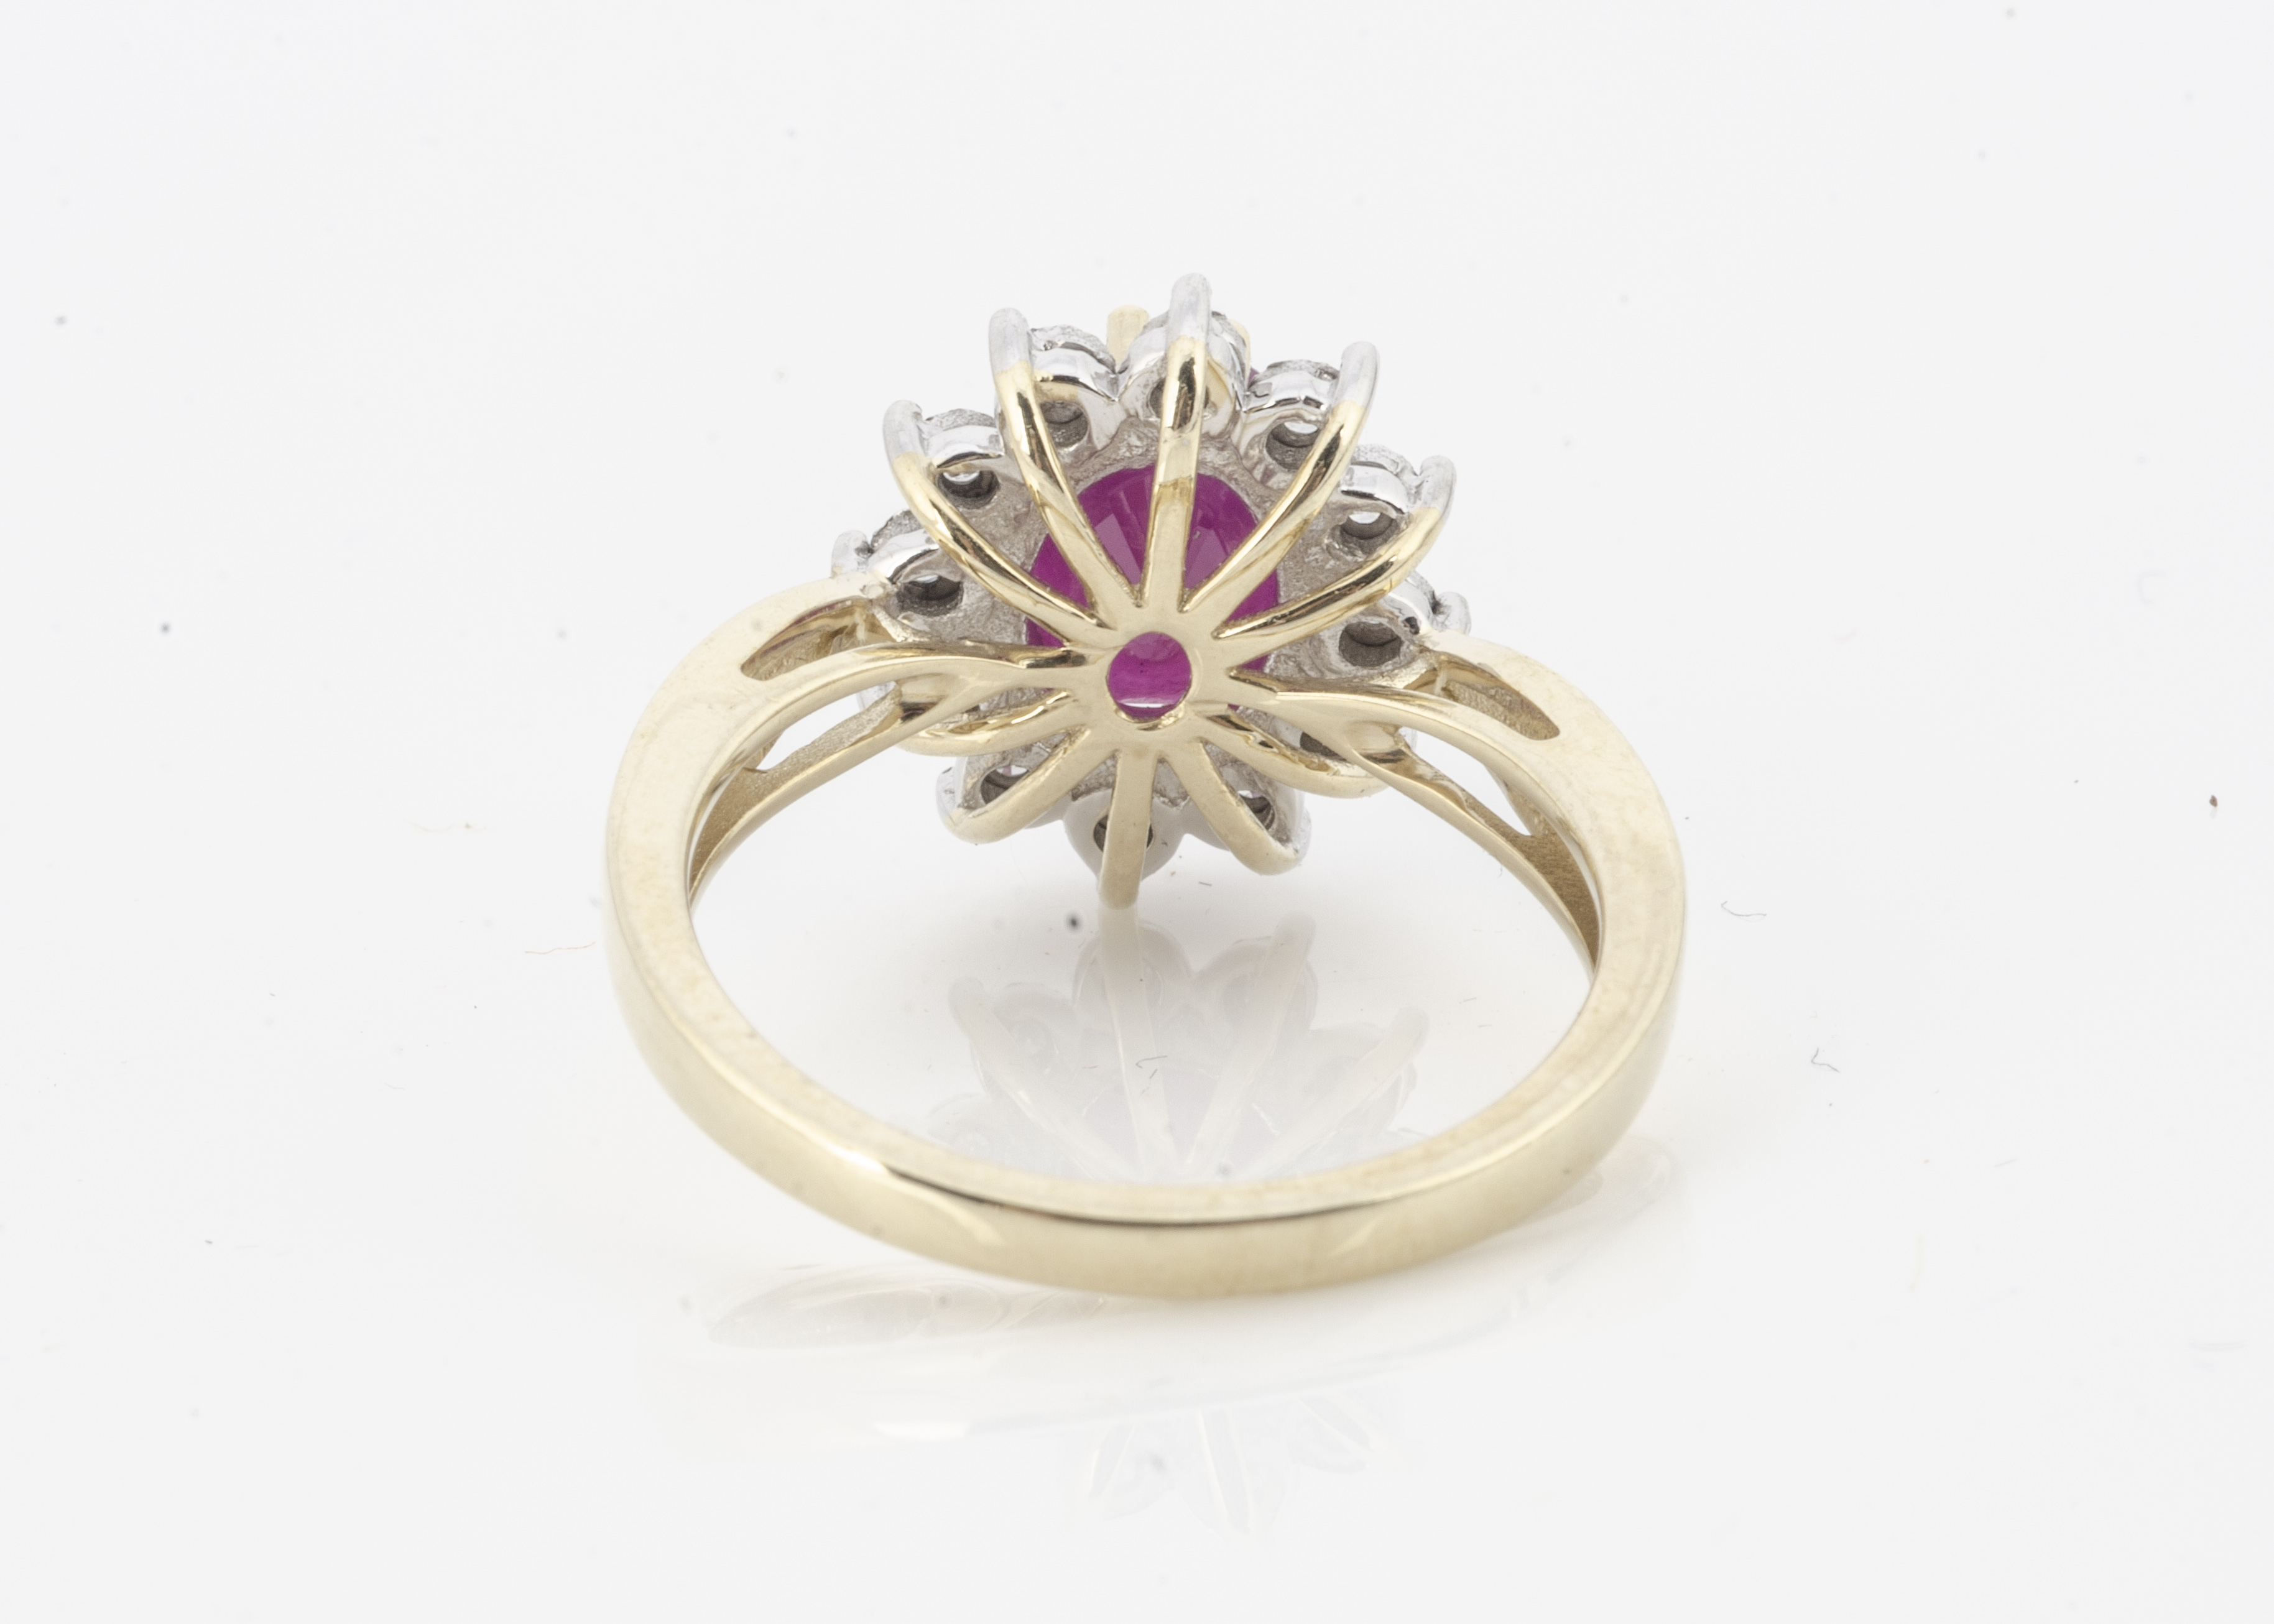 A 9ct gold ruby and diamond cluster ring, the opaque ruby surrounded by illusion set brilliant cut - Image 2 of 2